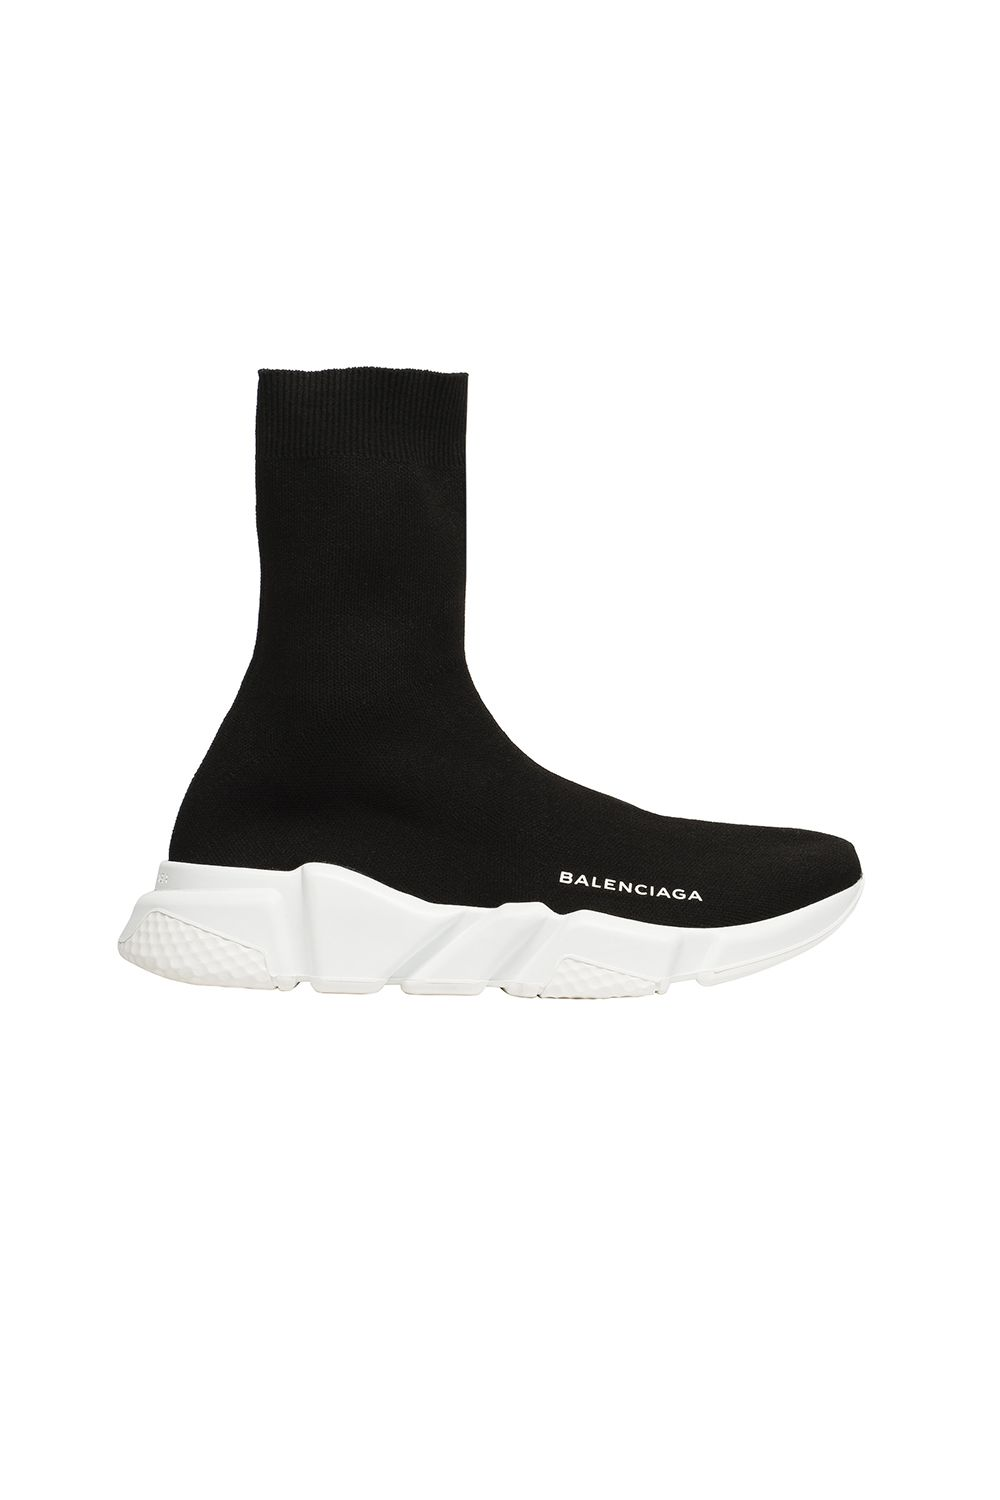 "<p>If sock boots and sneakers had a lovechild it would be these Aquasock-like slip-ons, which lend an ""in-the-know"" sleekness to your off-duty look.</p><p><span class=""redactor-invisible-space"" data-verified=""redactor"" data-redactor-tag=""span"" data-redactor-class=""redactor-invisible-space"">$565,</span> <a href=""http://www.balenciaga.com"" target=""_blank"" data-tracking-id=""recirc-text-link"">balenciaga.com.</a><span class=""redactor-invisible-space"" data-verified=""redactor"" data-redactor-tag=""span"" data-redactor-class=""redactor-invisible-space""></span></p>"